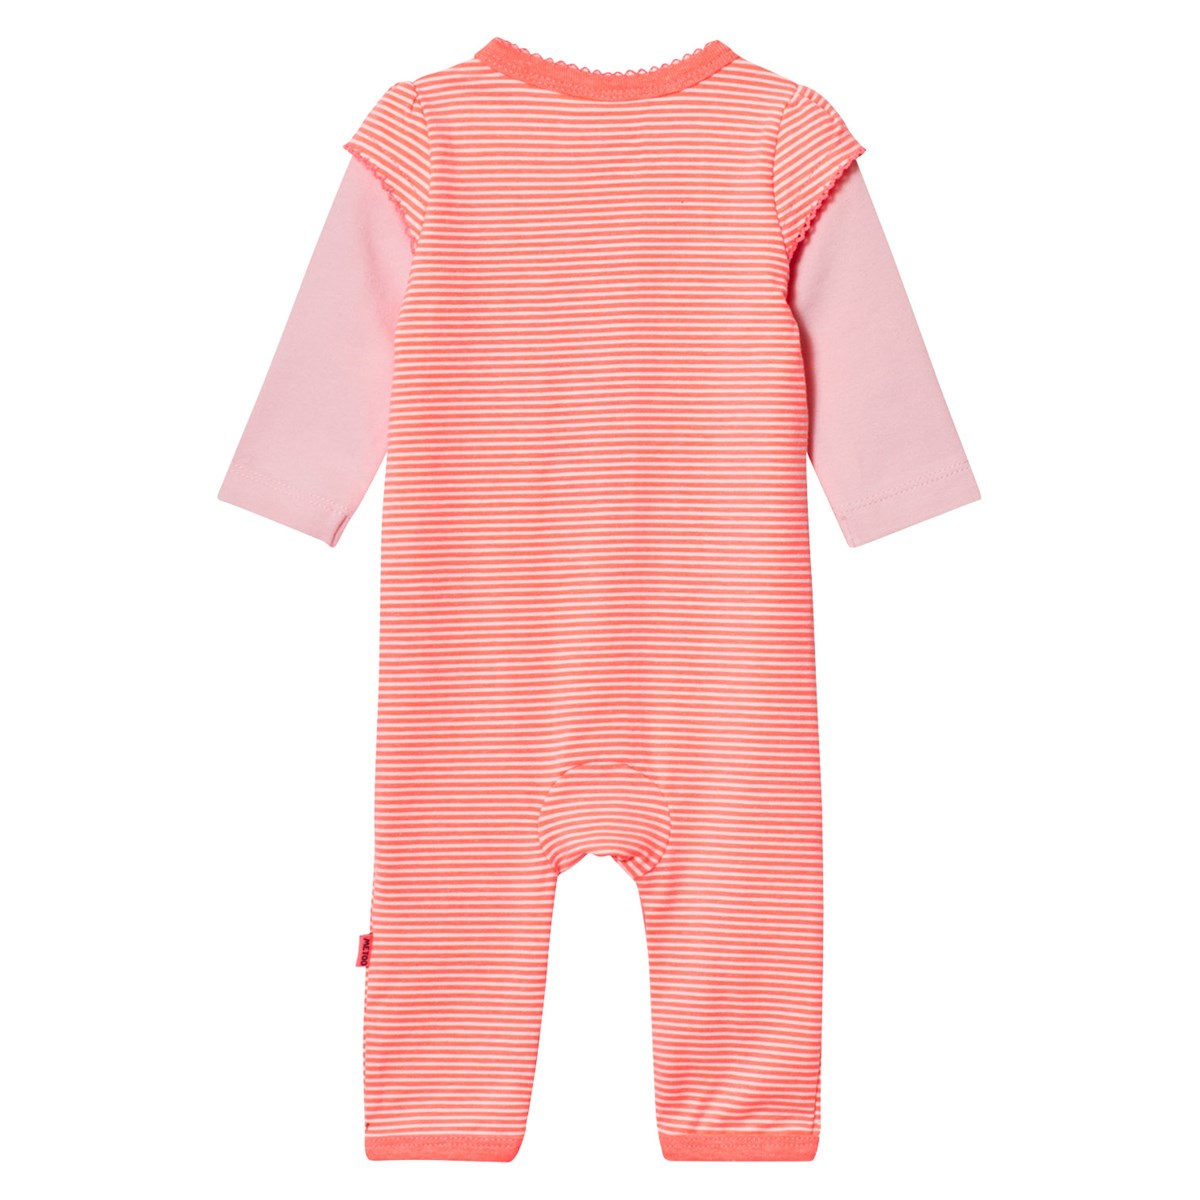 Me Too Kin 261 Baby One Piece Bright Coral Babyshop Com